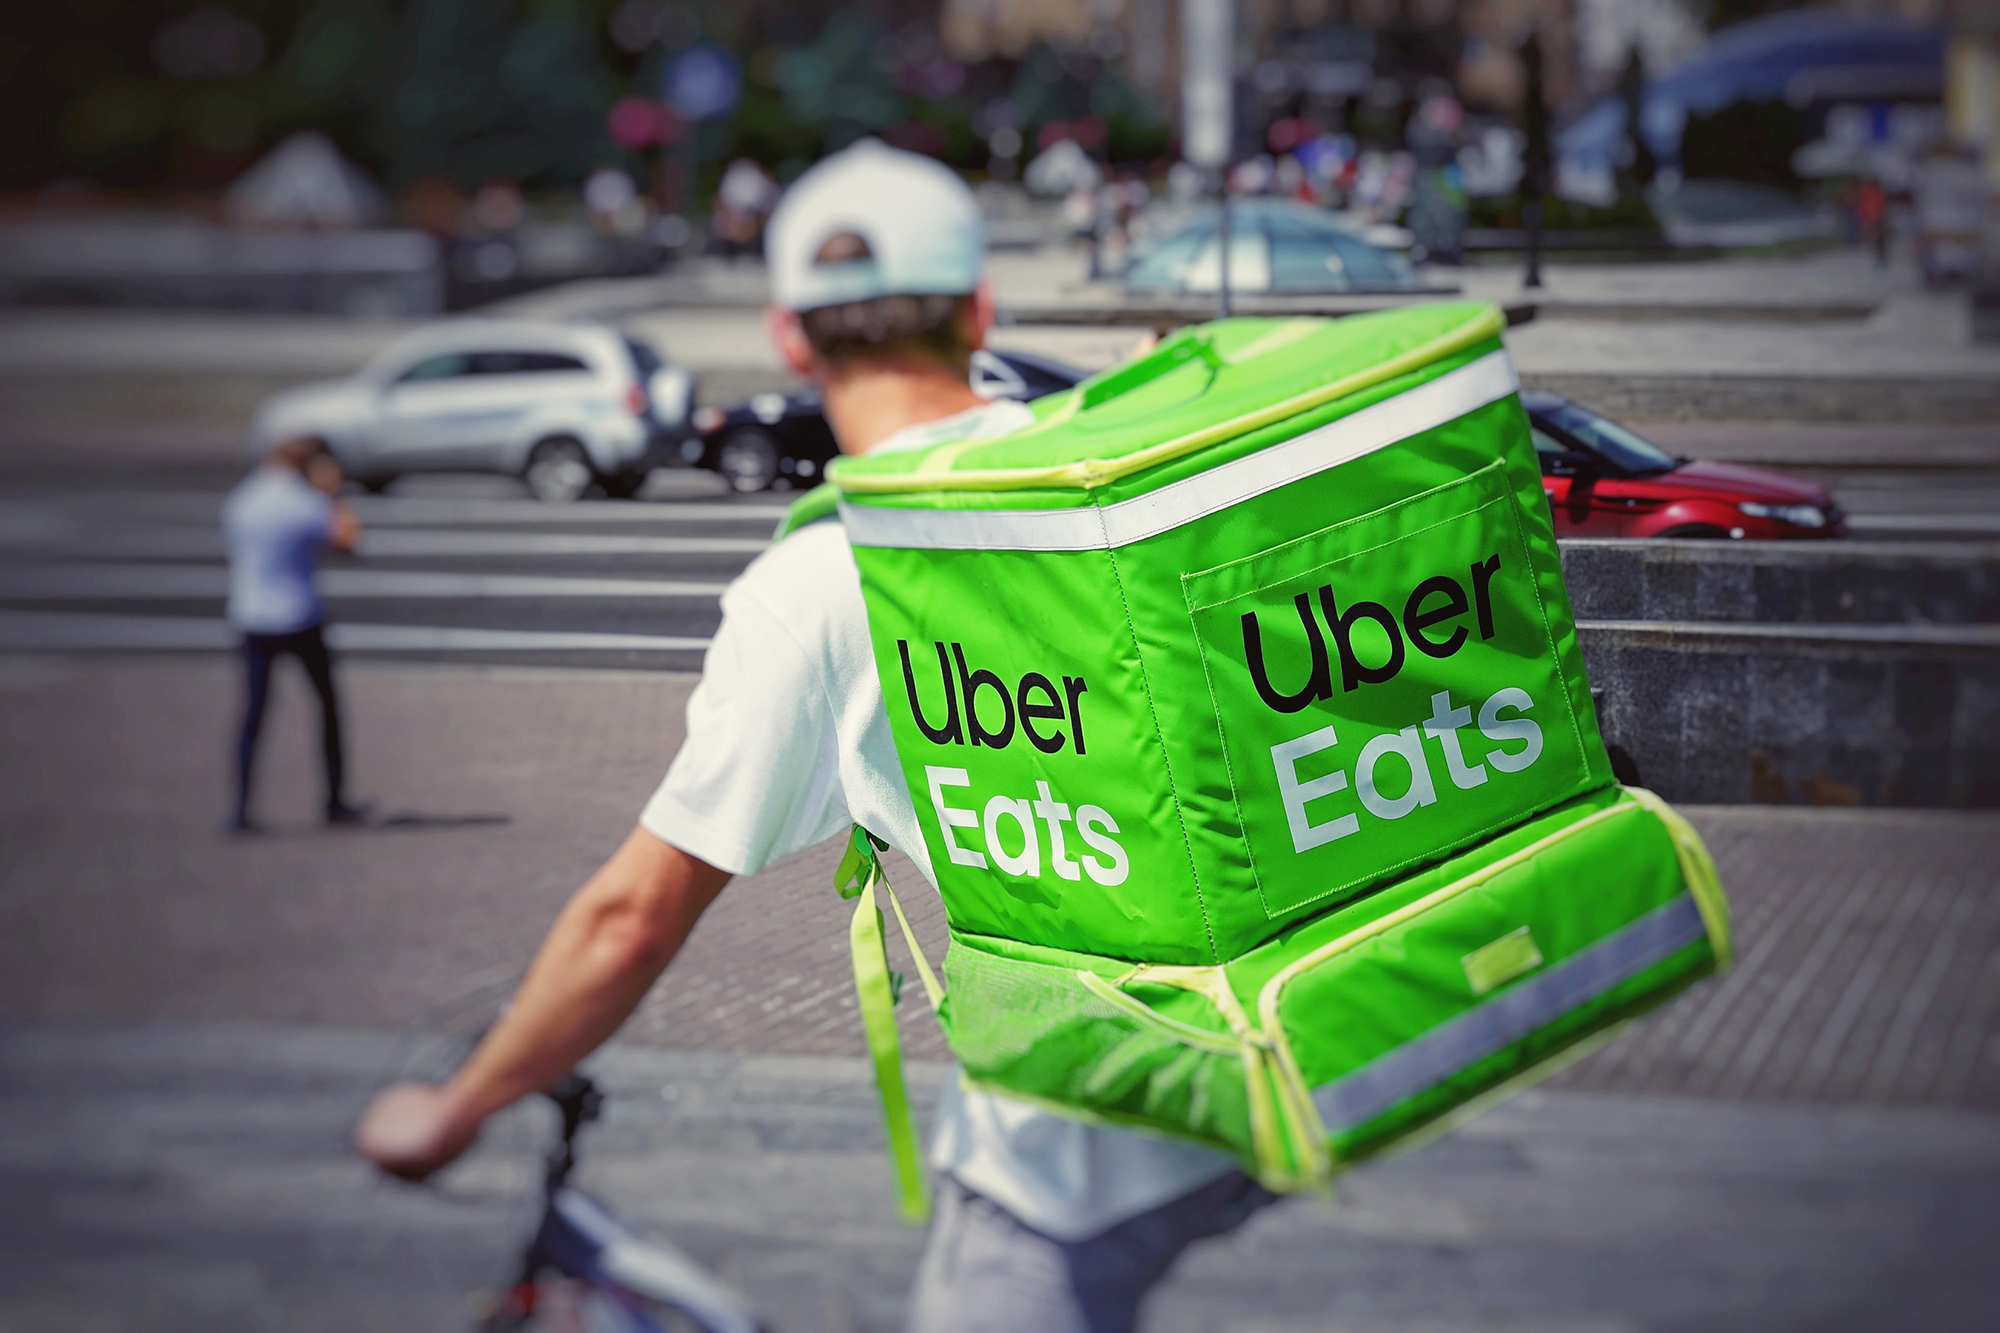 A man riding a bike with an Uber Eats cooler on his back.